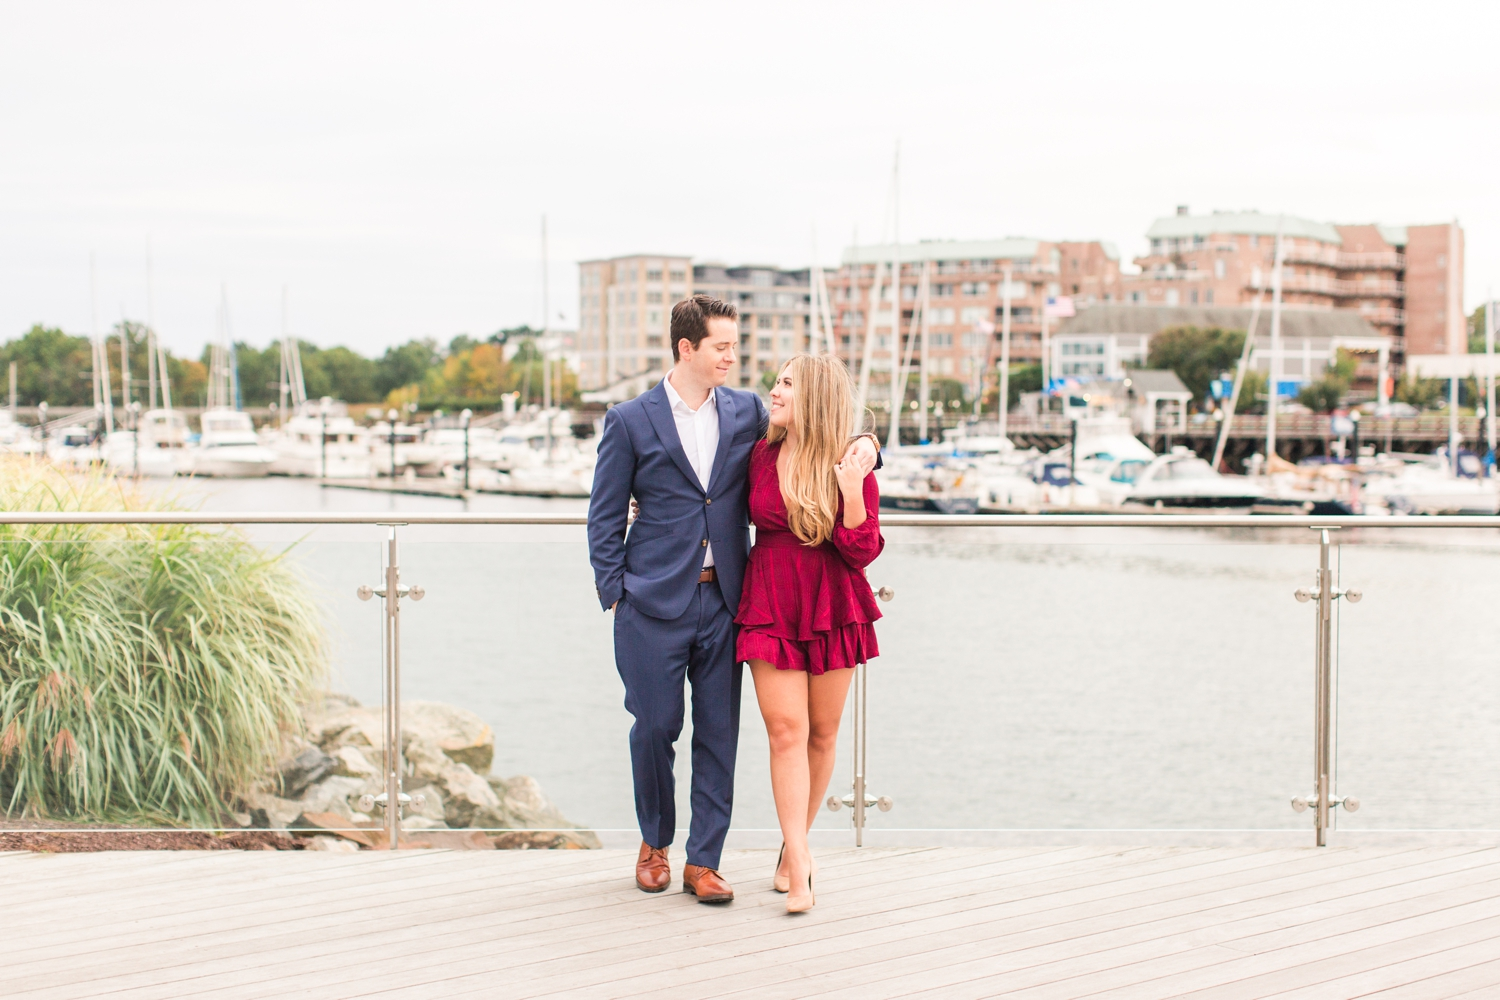 harbor-point-engagement-session-stamford-connecticut-wedding-photographer-rebecca-fred-shaina-lee-photography-photo-25.jpg